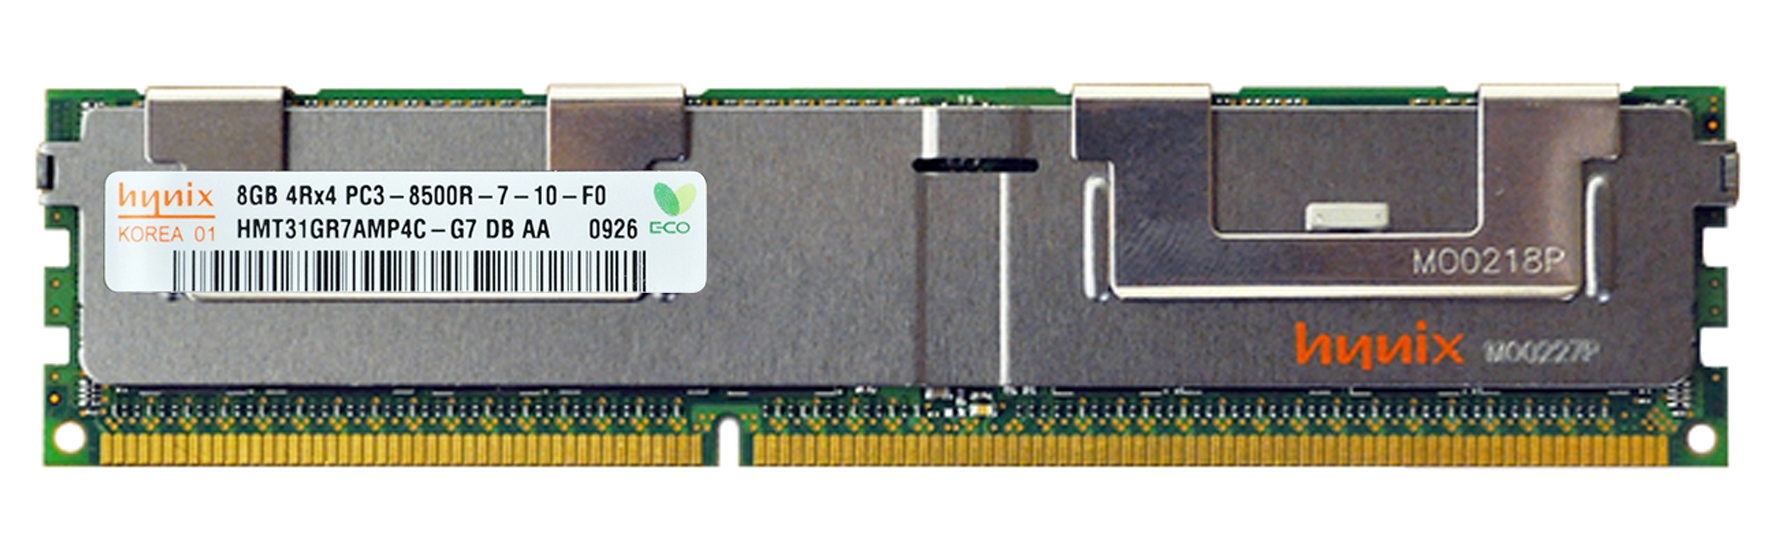 M4L-PC31066D3Q4R7S-8G M4L Certified 8GB 1066MHz DDR3 PC3-8500 Reg ECC CL7 240-Pin Quad Rank x4 DIMM